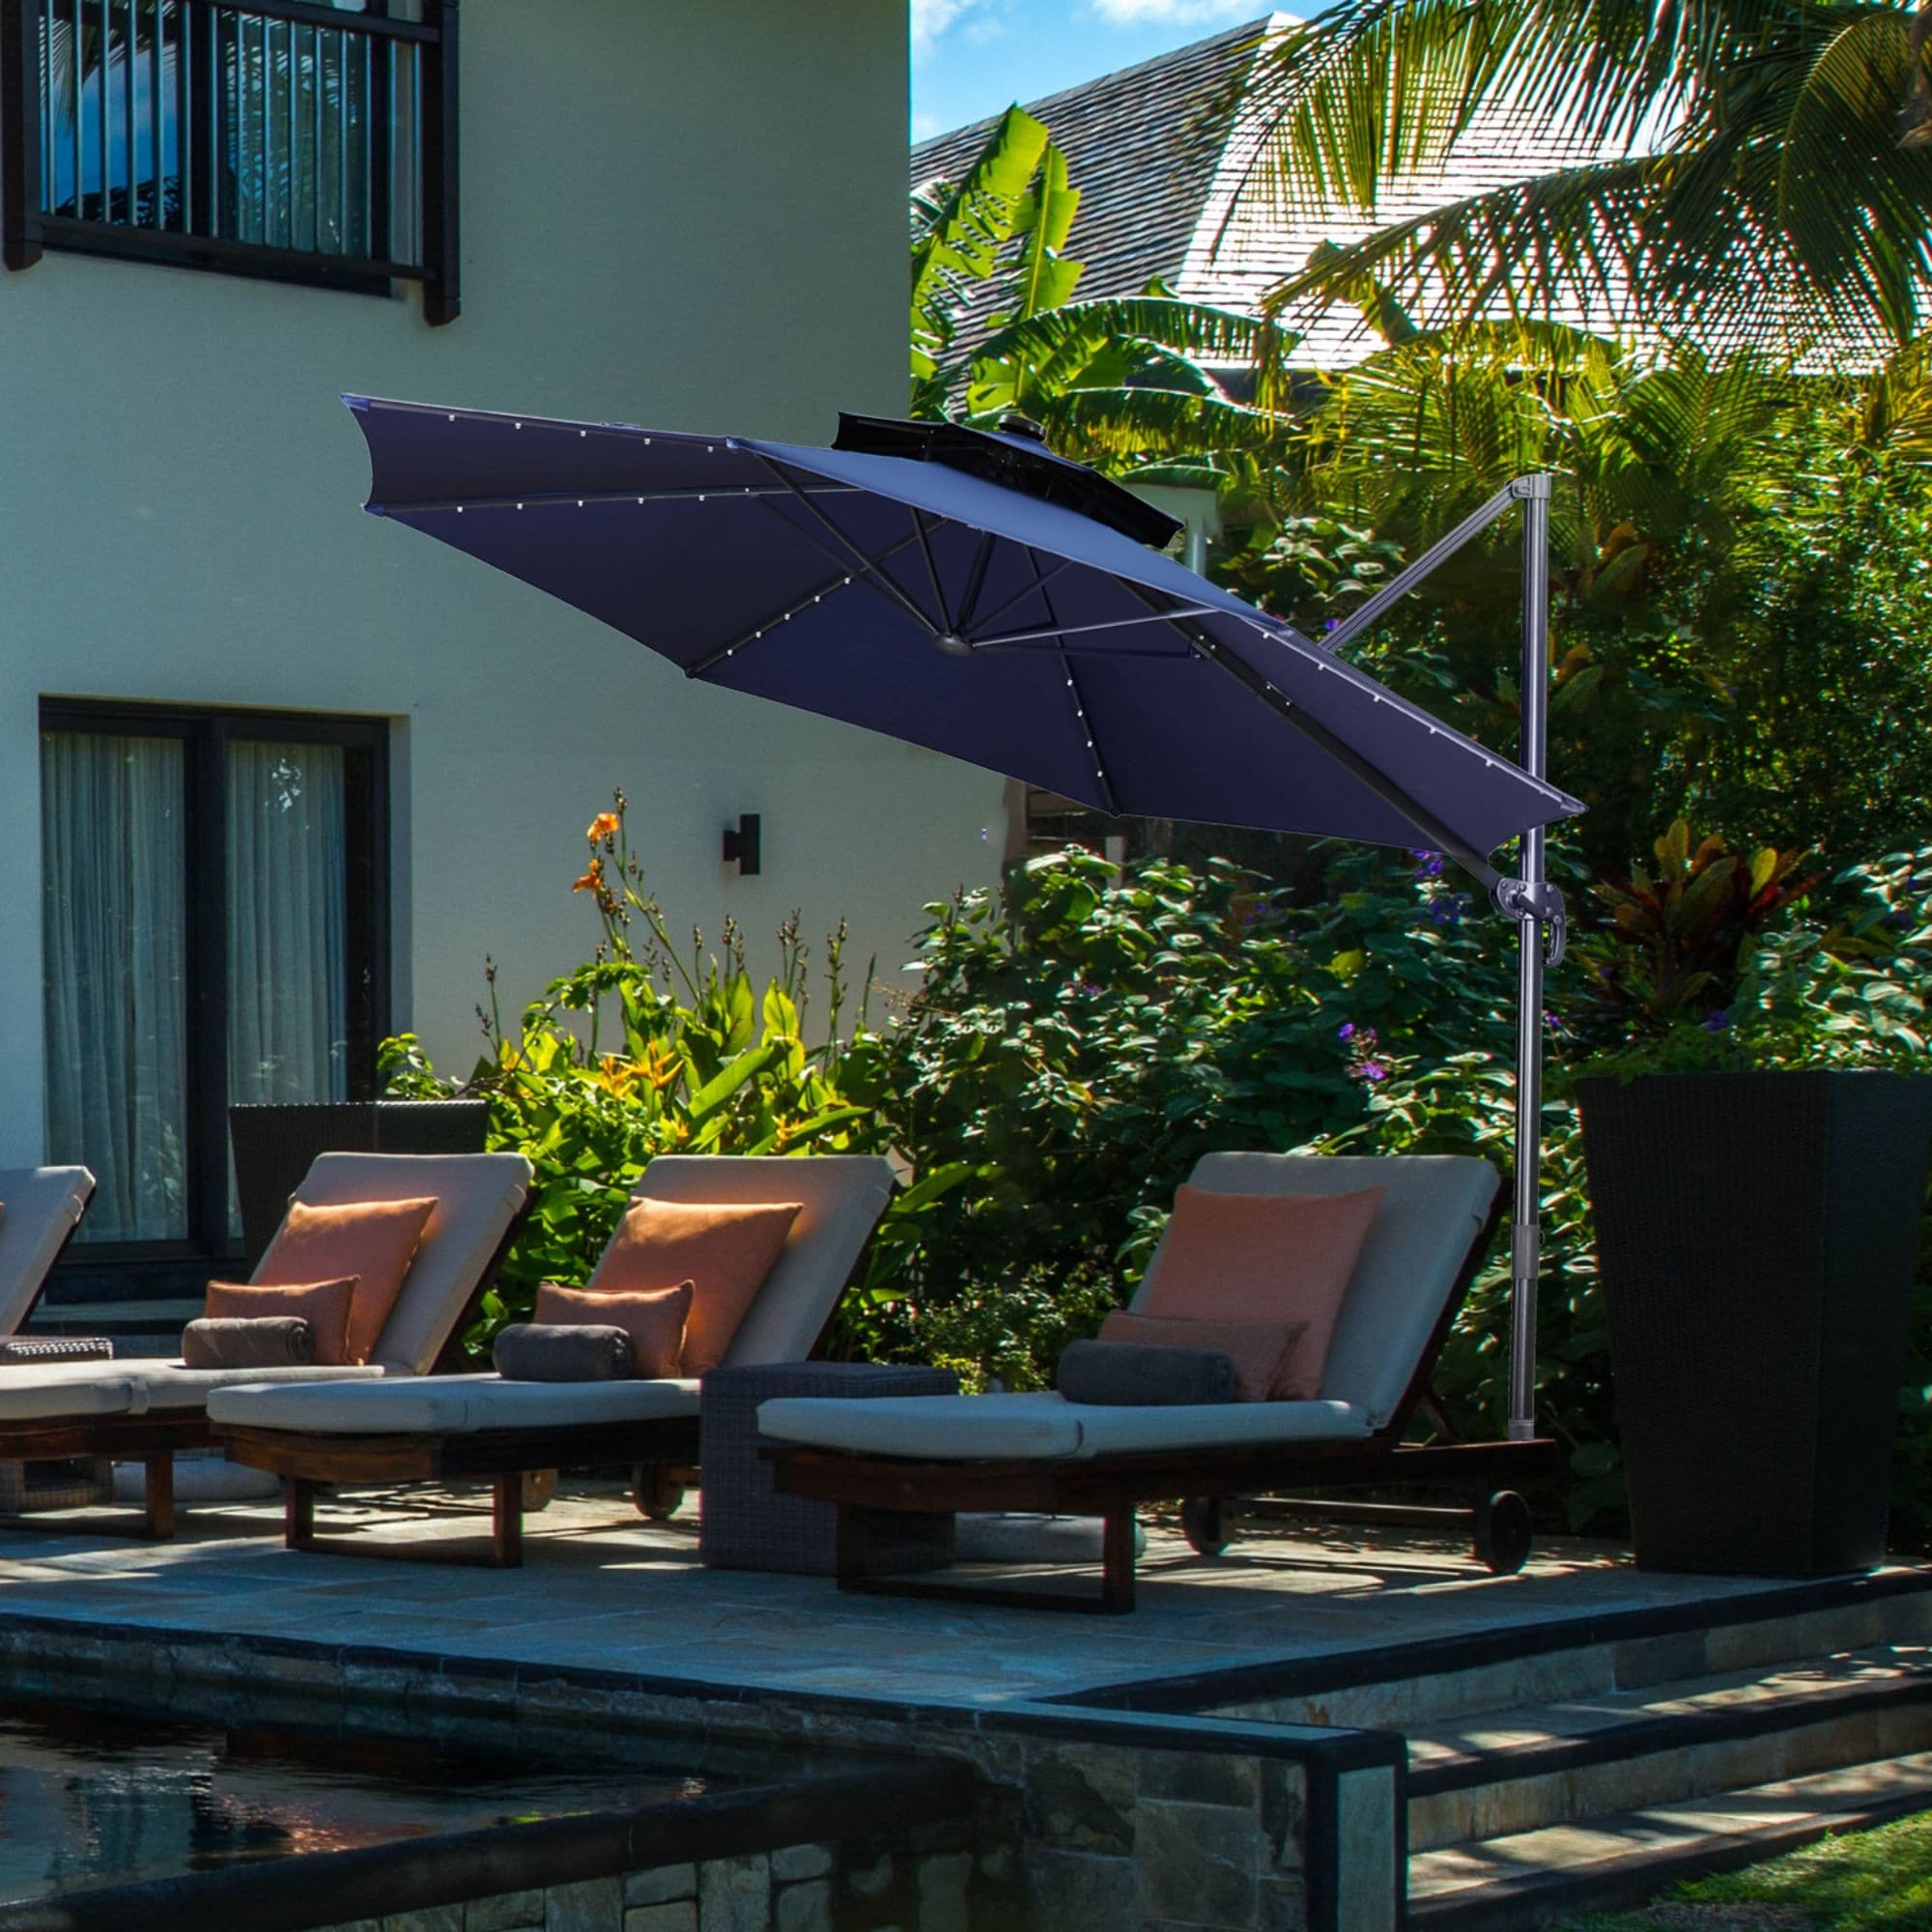 10ft double top windproof patio cantilever umbrella with solar light